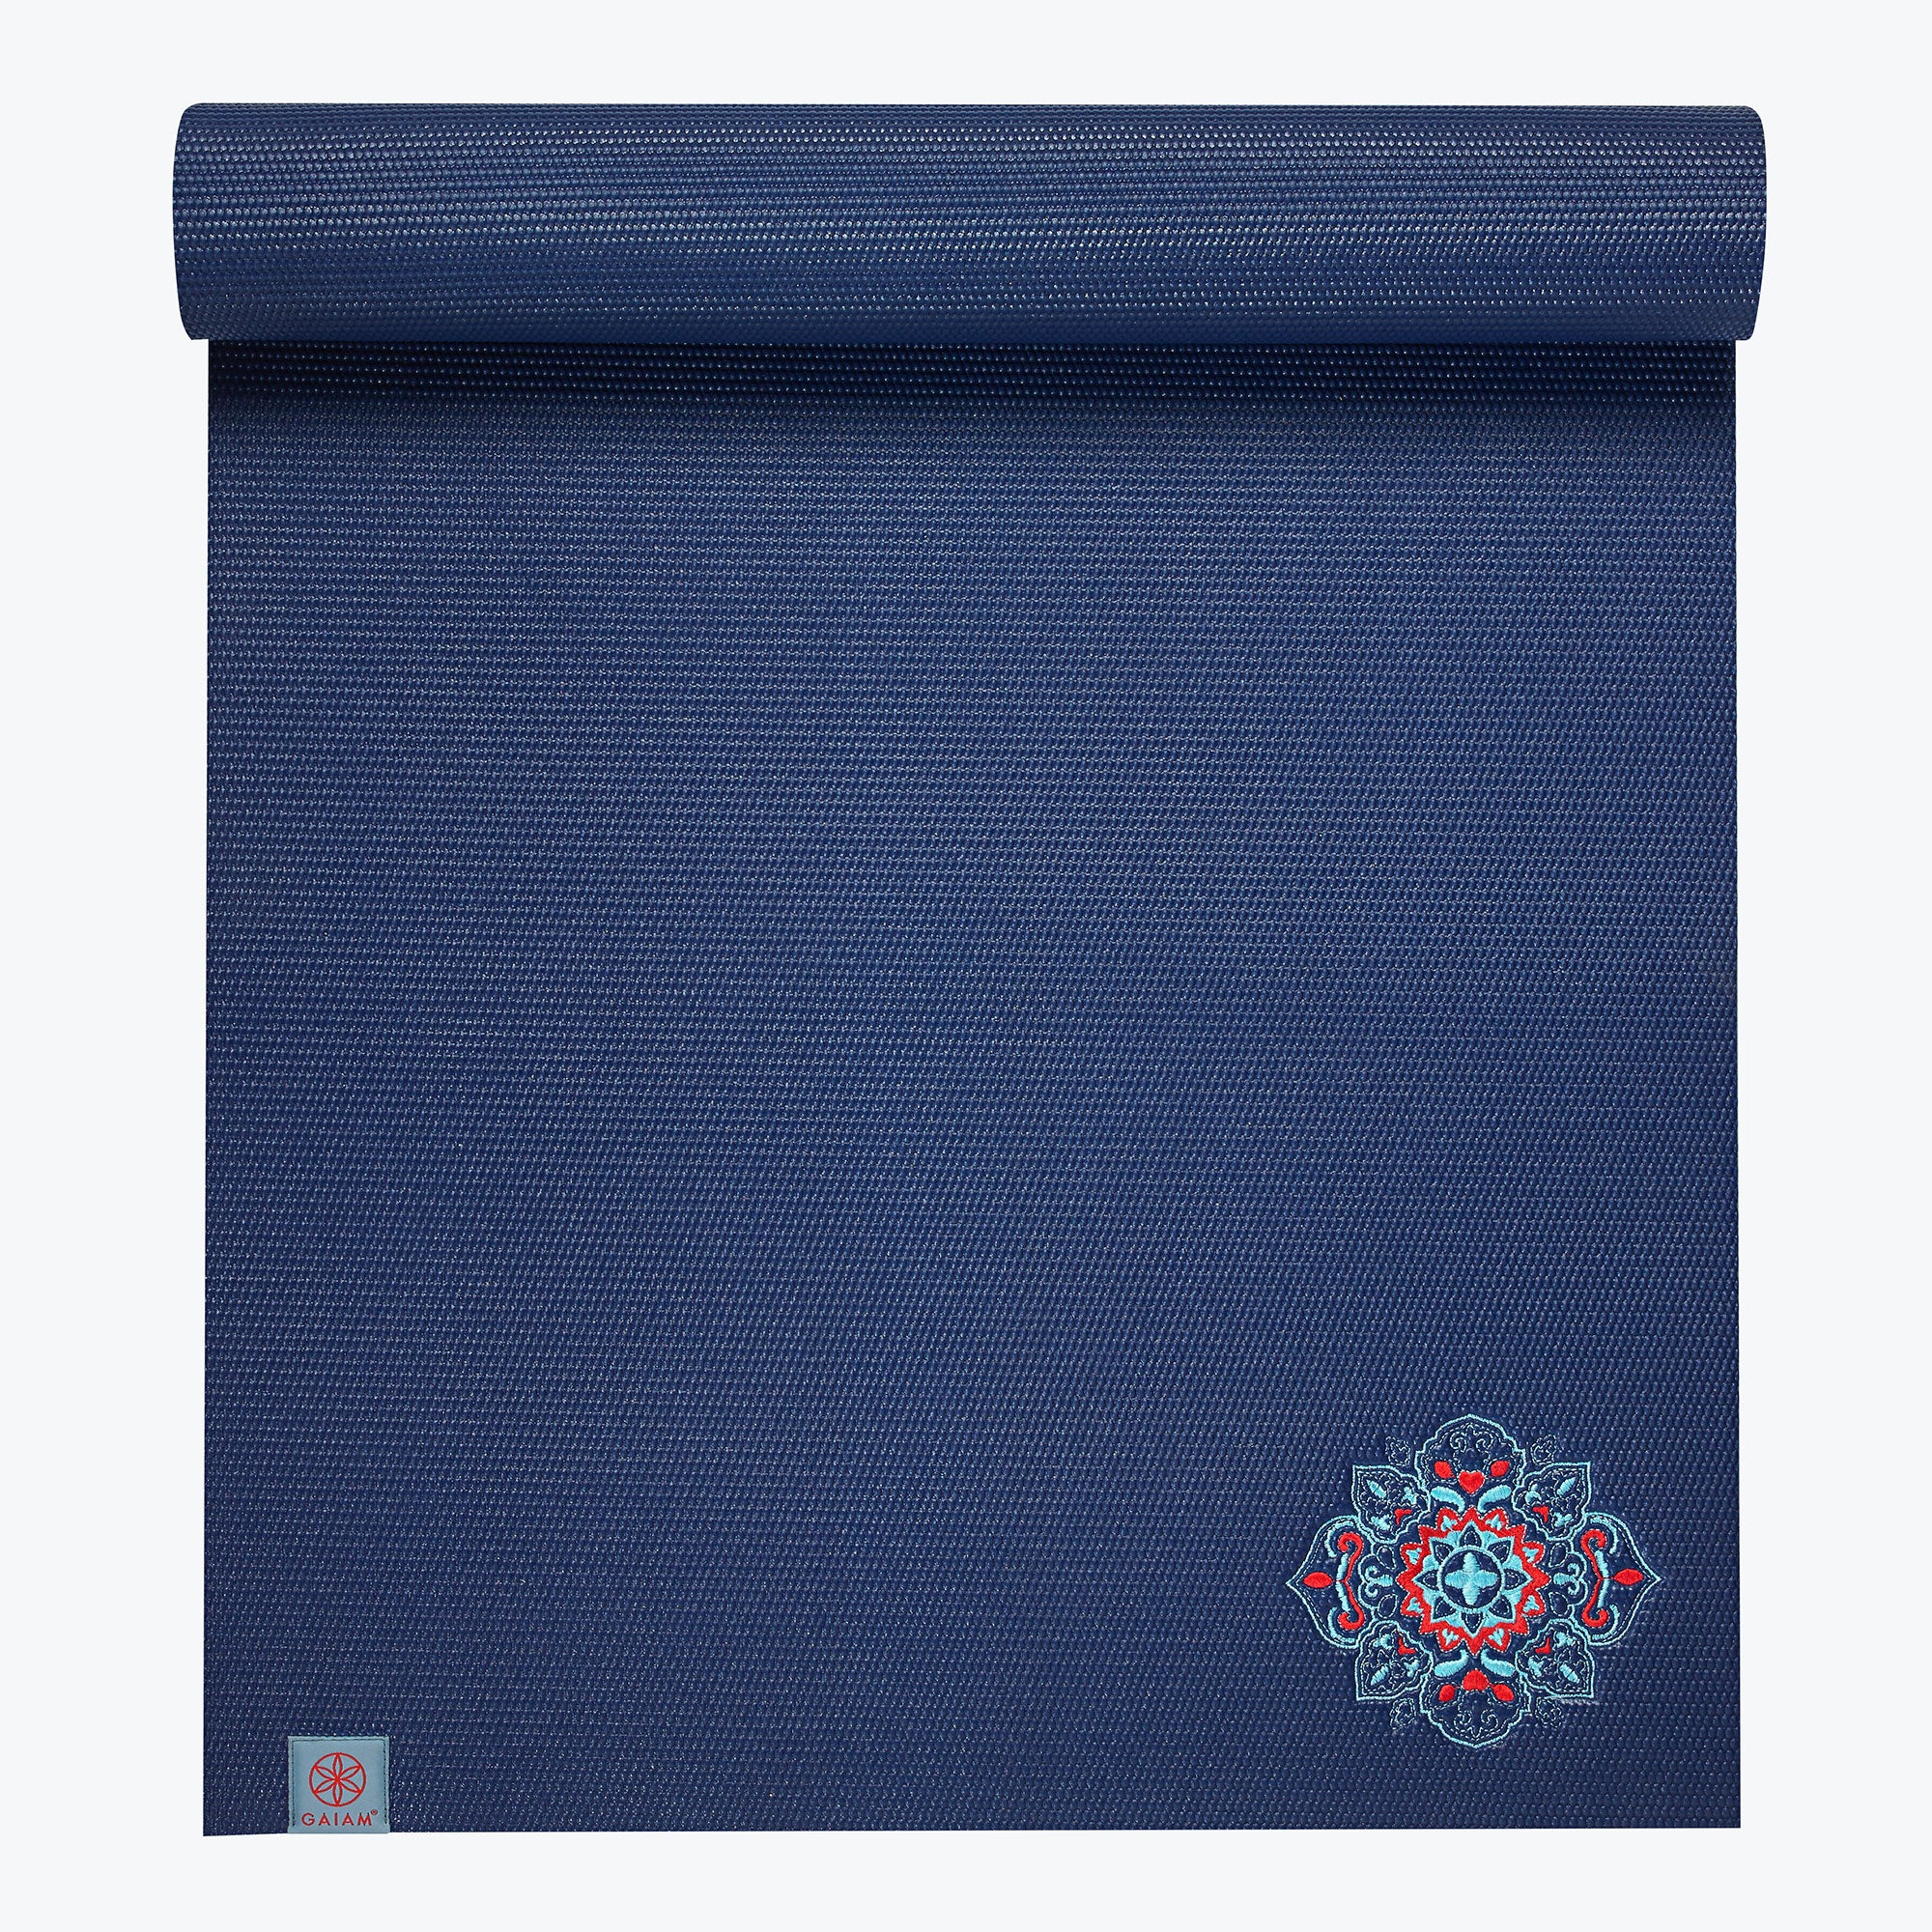 Image of Performance Embroidered Yoga Mat (6mm)